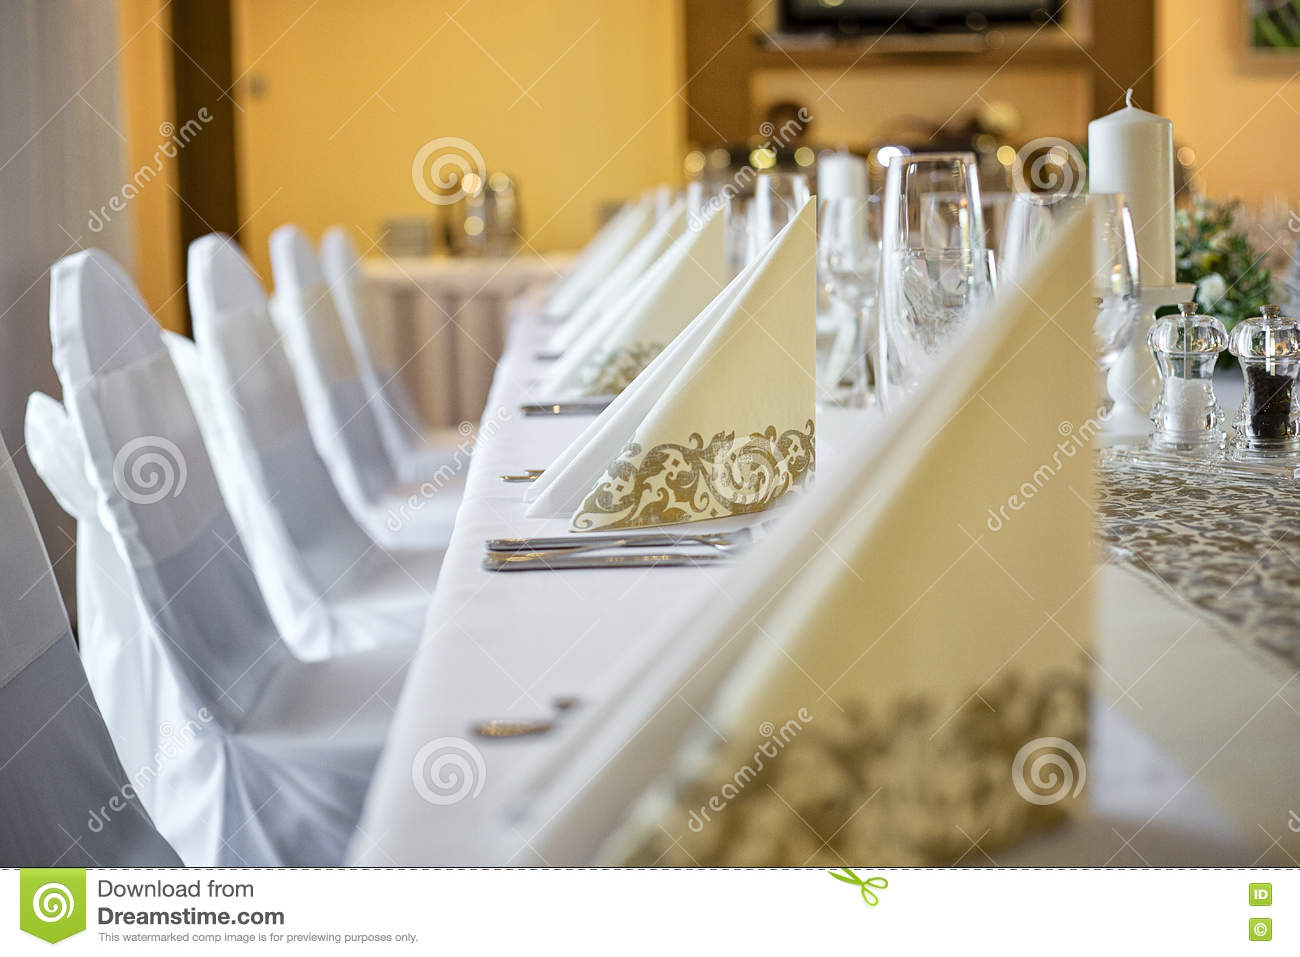 Beige Decorative Paper Napkins On Wedding Table Stock Photo Image Of Table Glasses 81379648